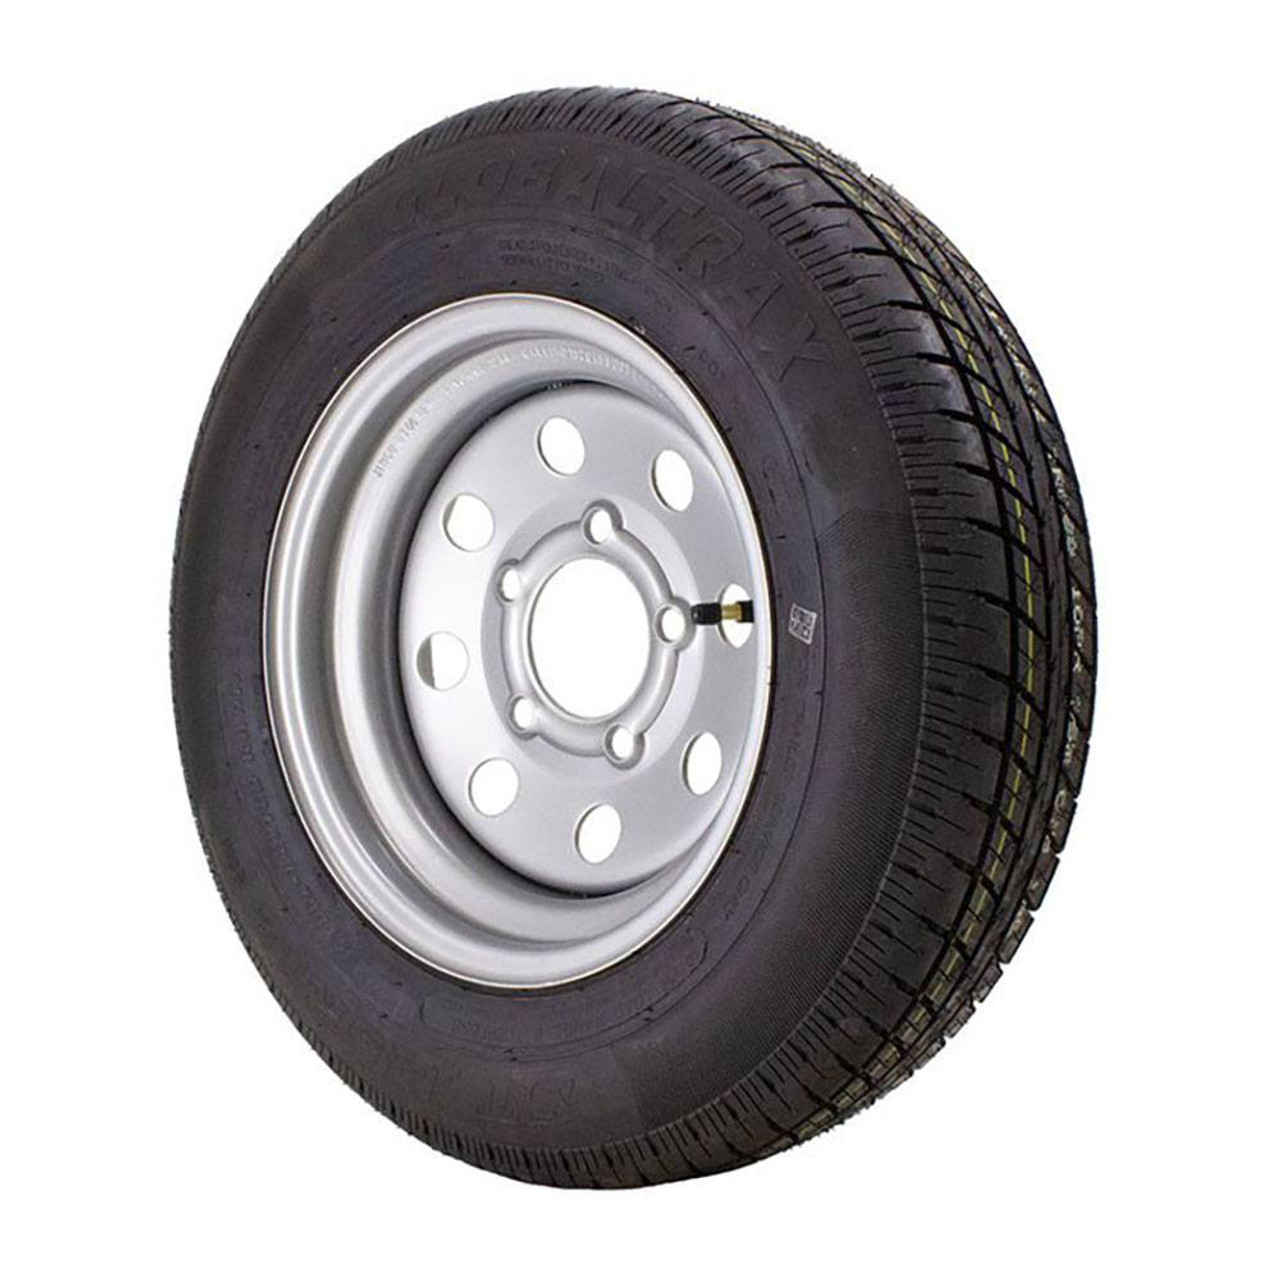 ST145/R12 GlobalTrax Trailer Tire LRE on 5 Bolt Silver Mod Heavy Duty Wheel